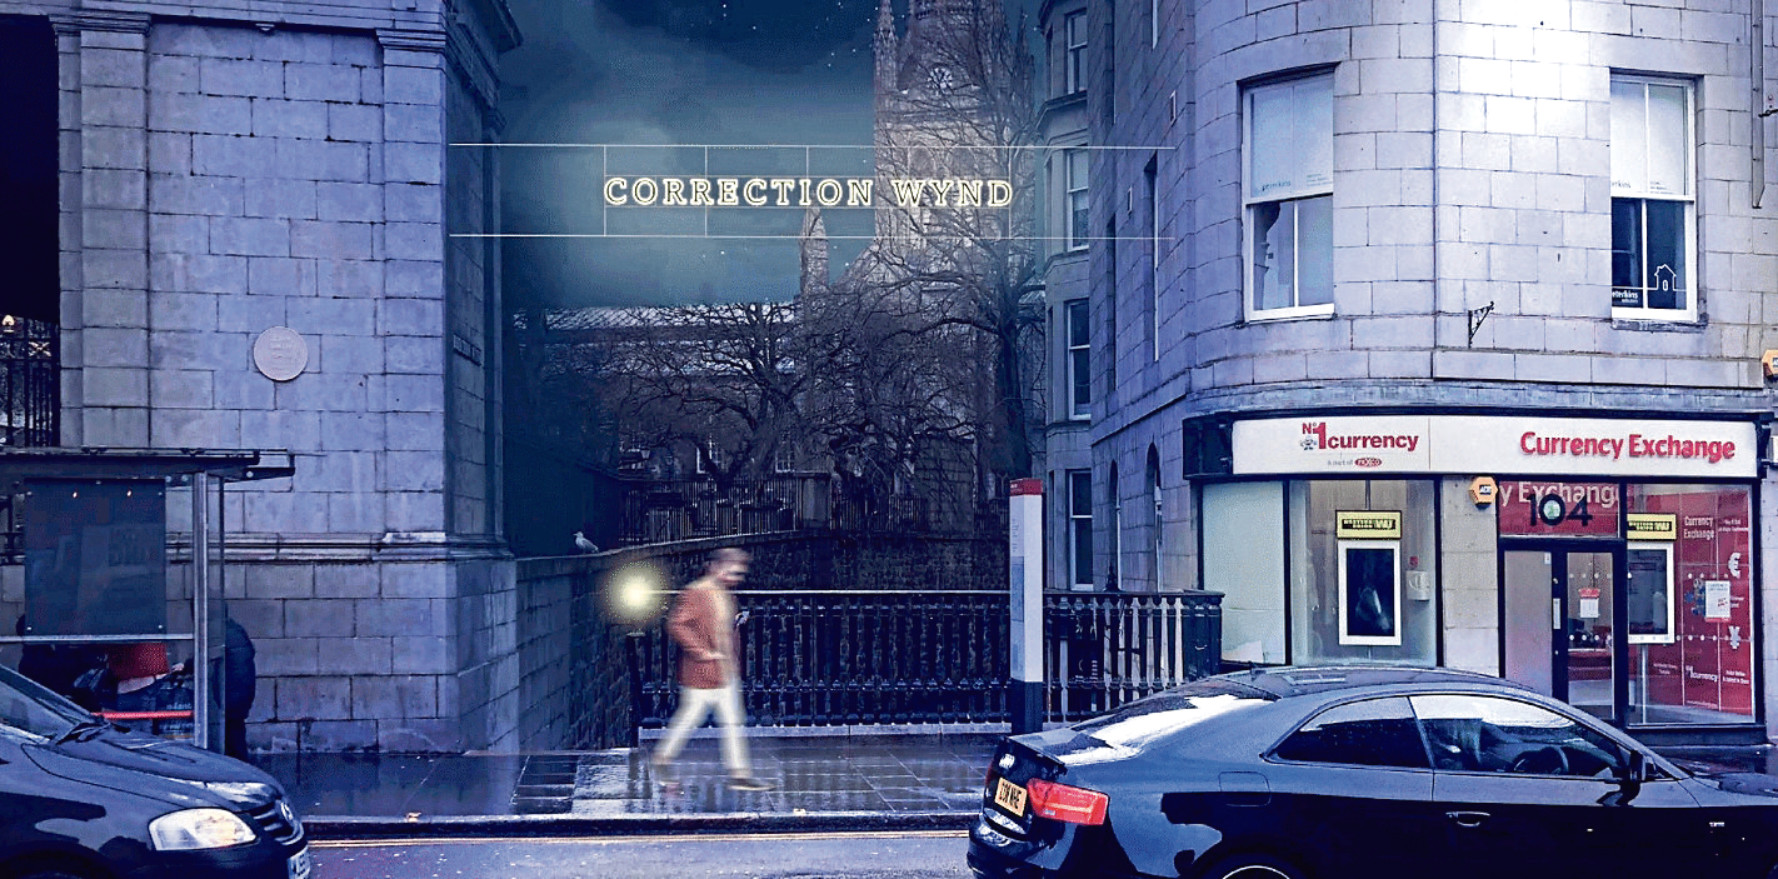 An artist impression of how Correction Wynd could look